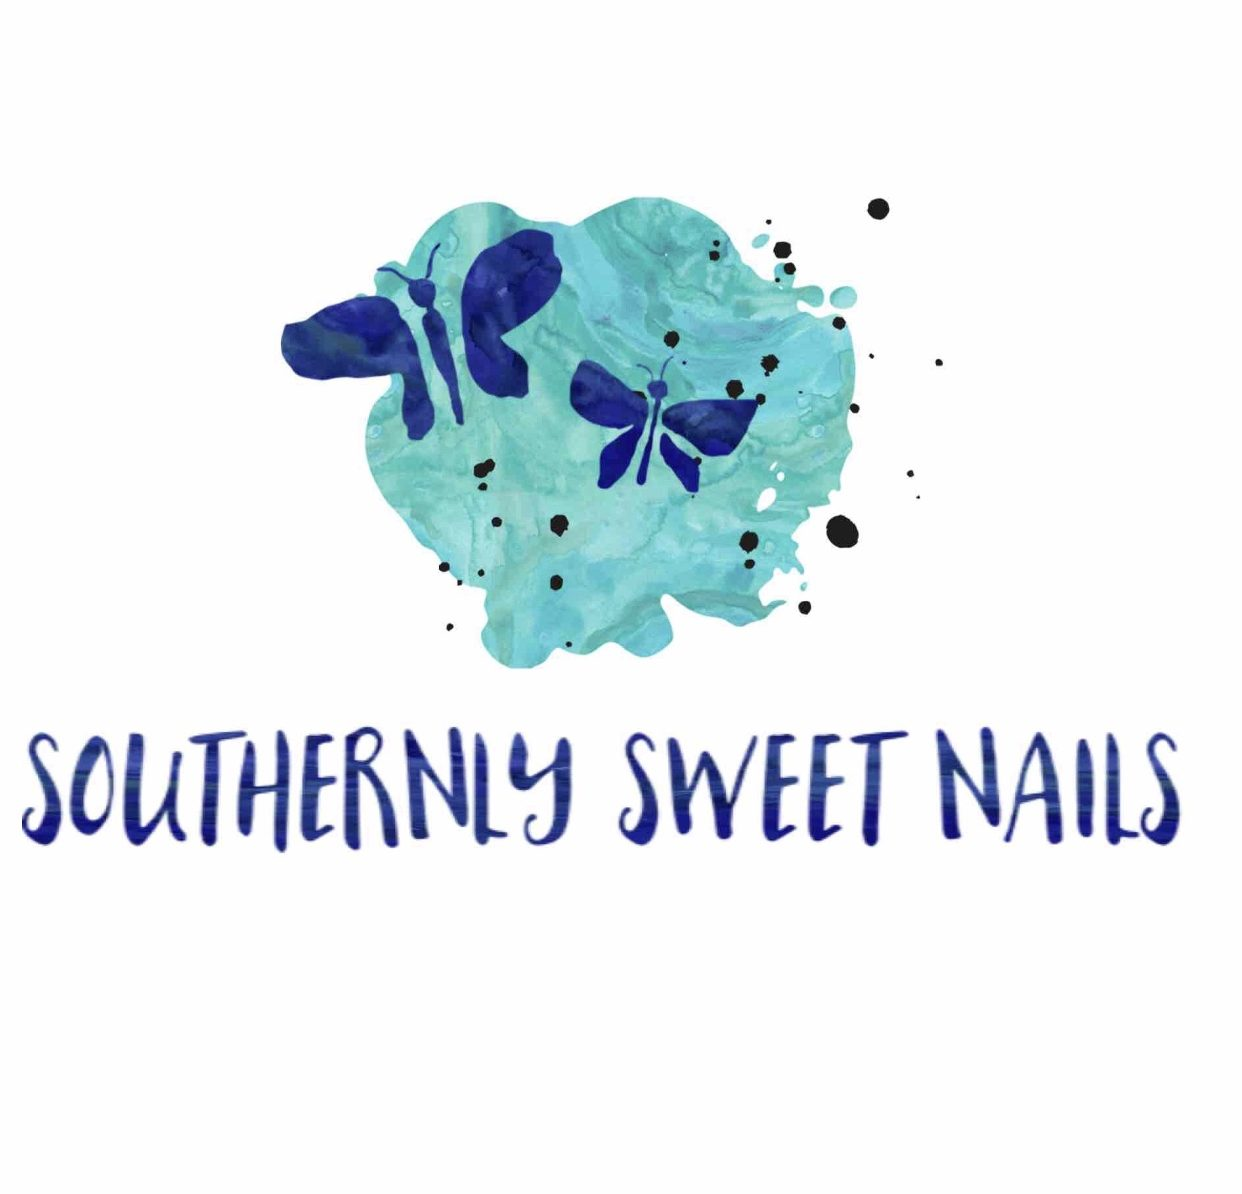 Southernly Sweet Nail Blog